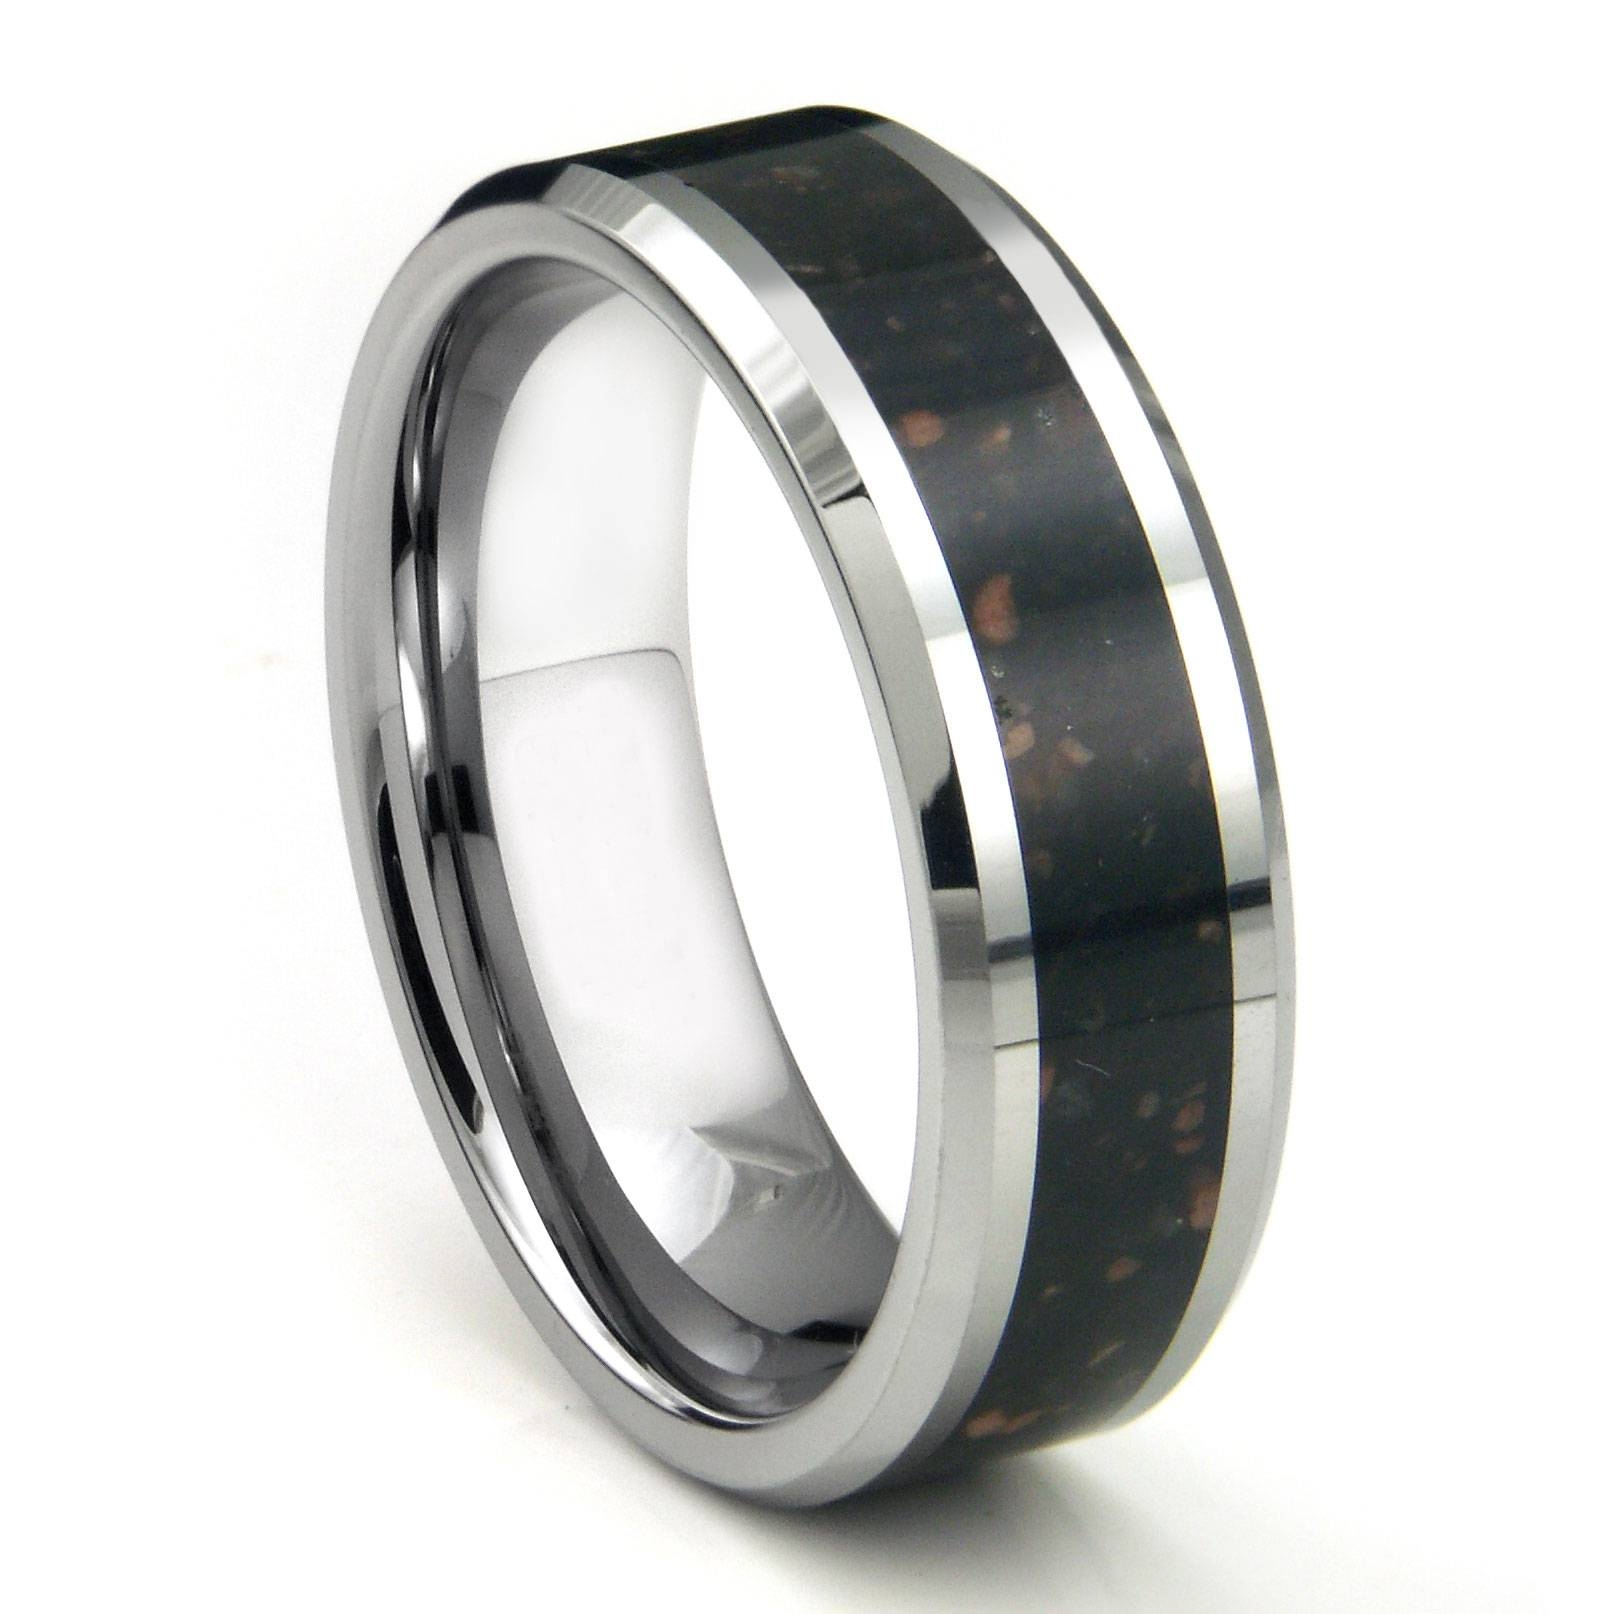 Tungsten Carbide Black Lava Riverstone Inlay Wedding Band Ring Regarding Strongest Metal Wedding Bands (View 11 of 15)